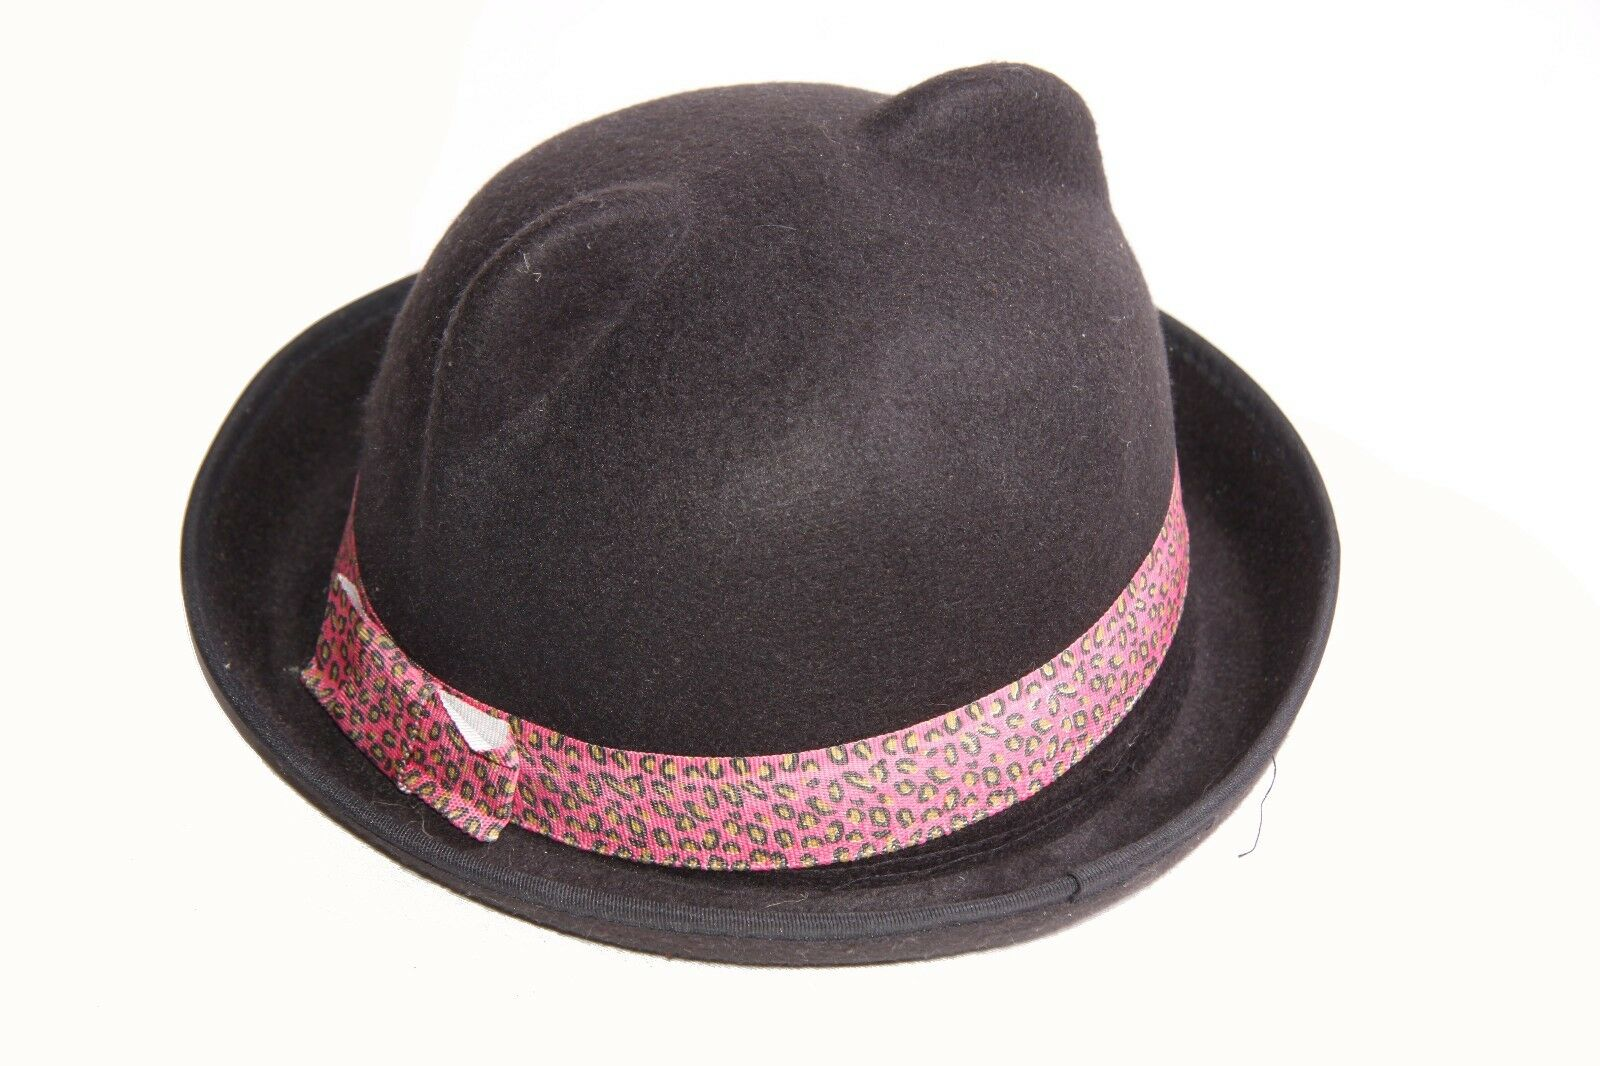 Ladies Black Cute Artsy Retro Bowler Hipster Round Ear Hat Pink Band (s247) 5d99532dcd7